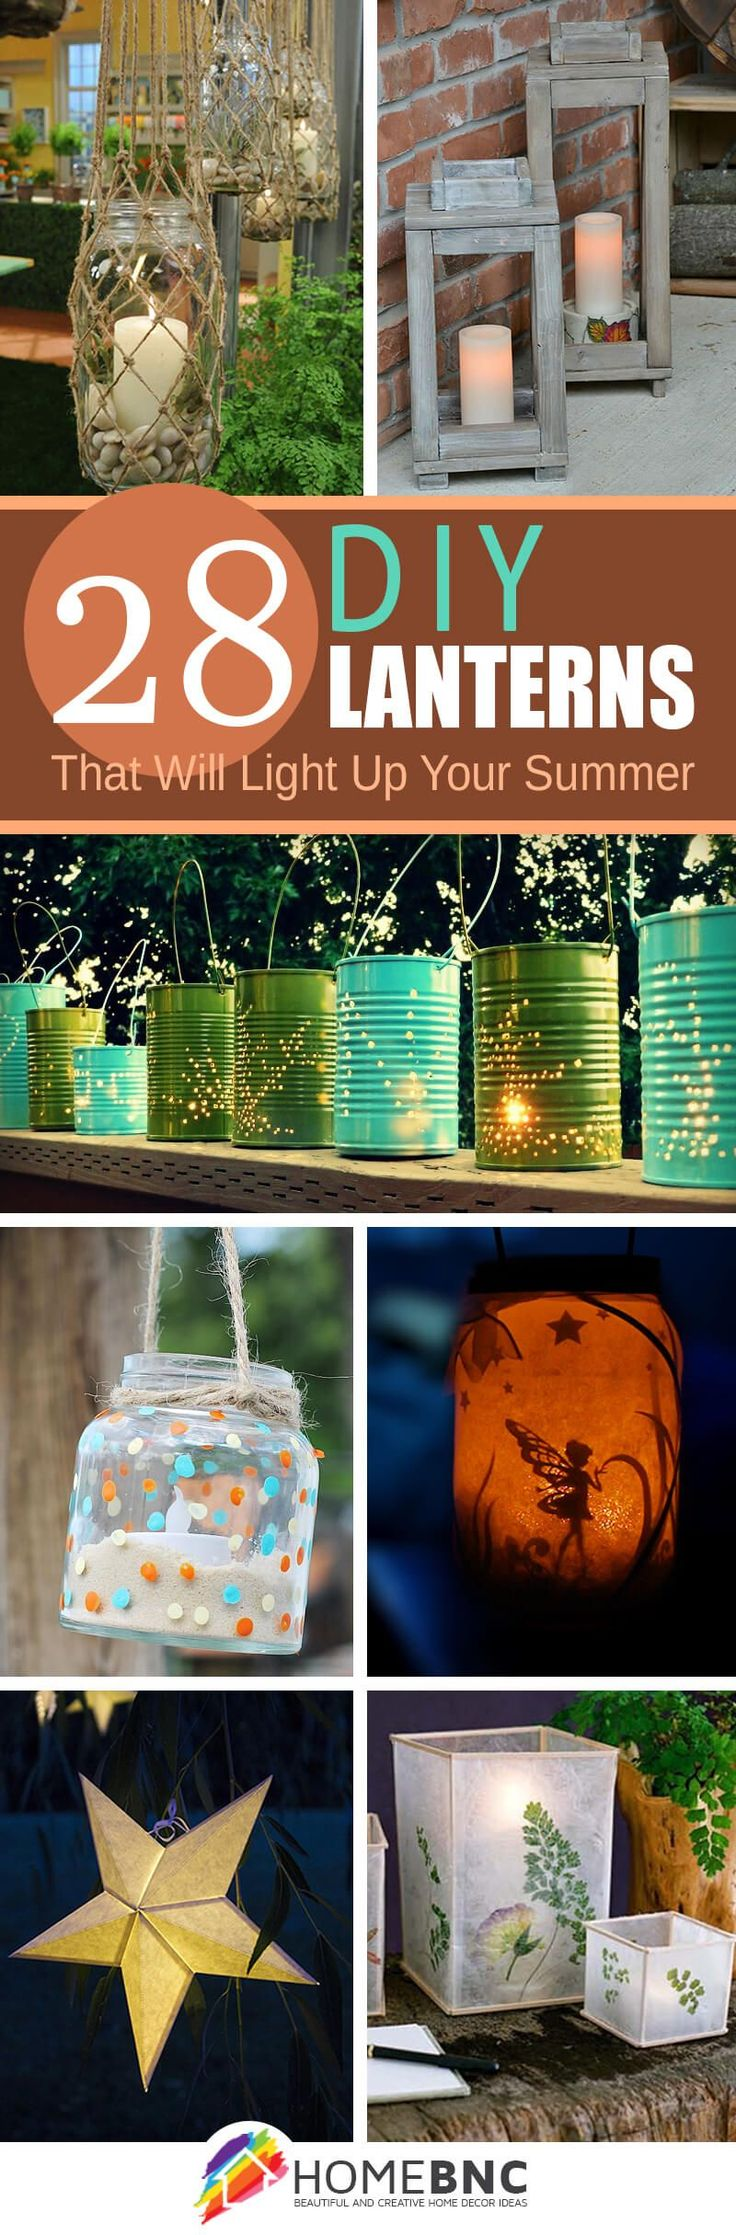 Homemade garden art ideas - 28 Diy Garden Lantern Ideas To Illuminate Your Backyard